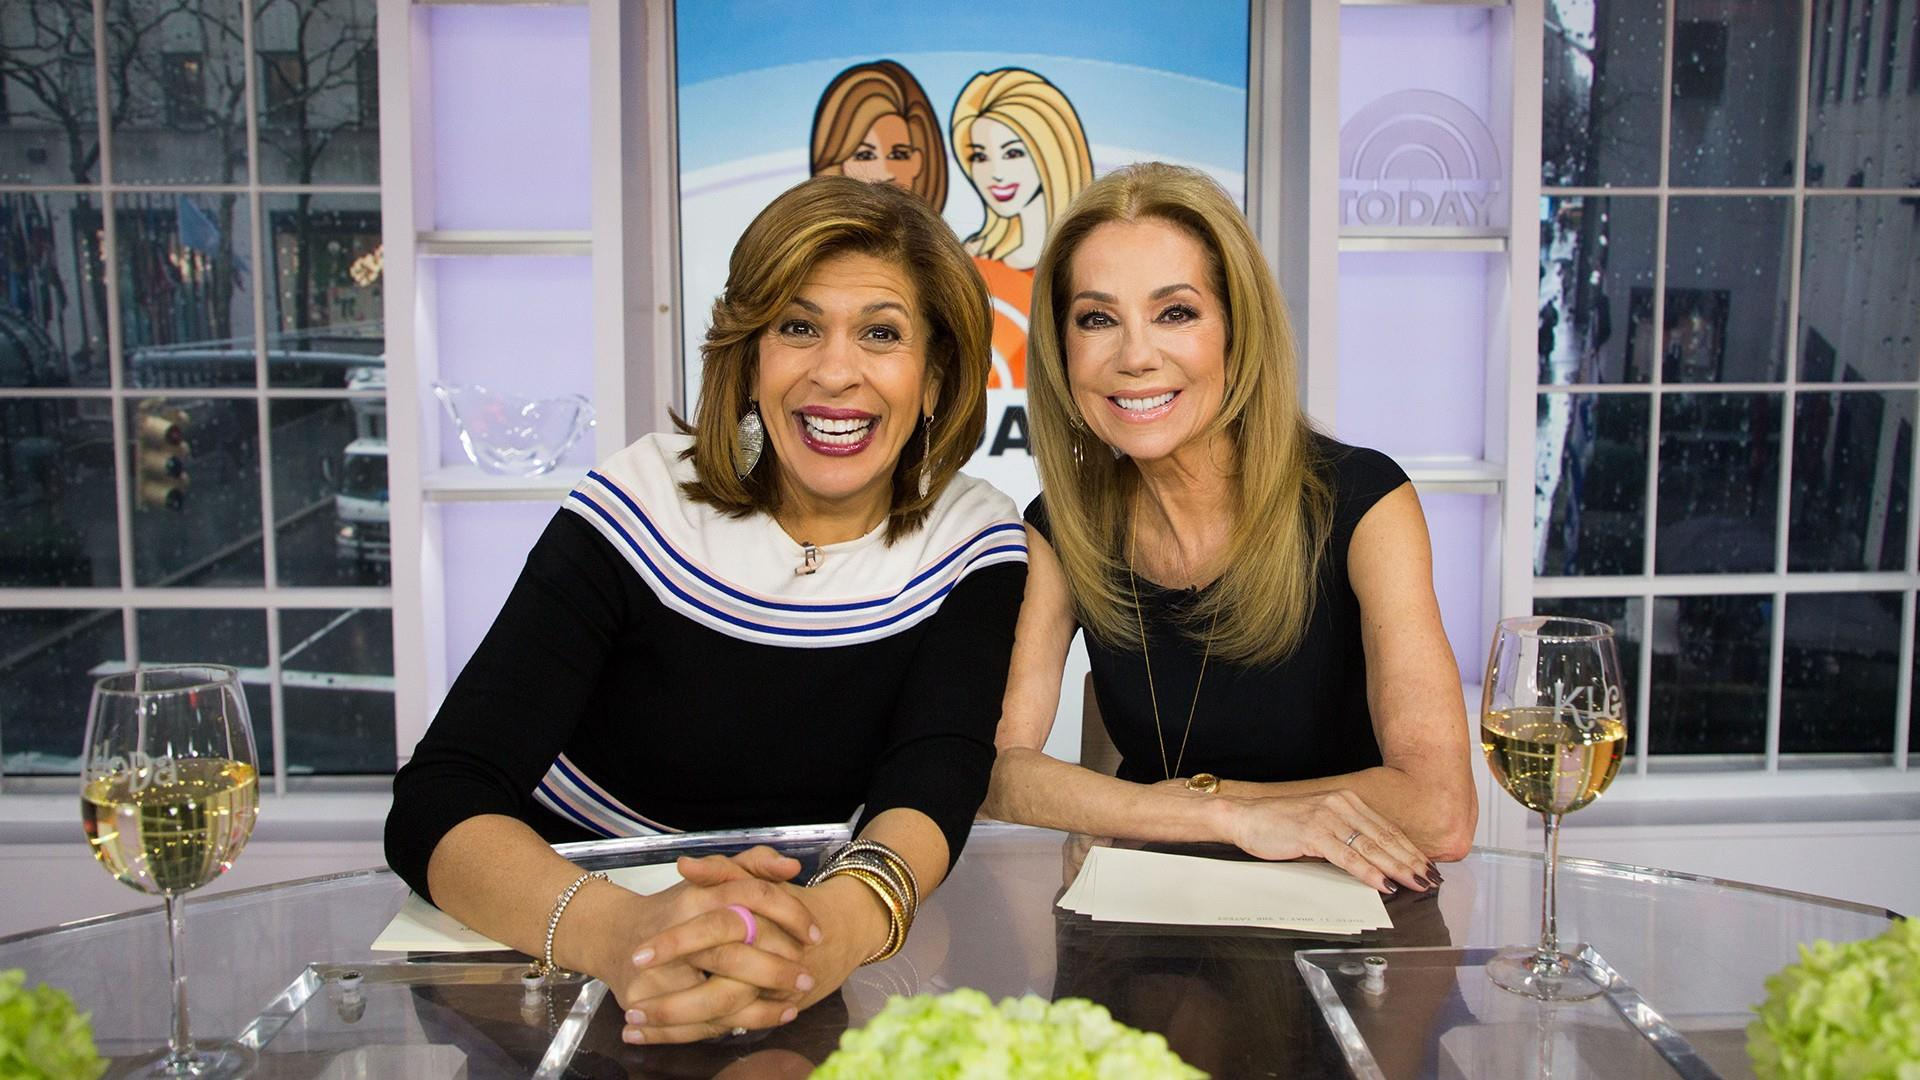 kathie lee and hoda are sending a lucky klg and hoda viewers send funny videos to our ultimate fan